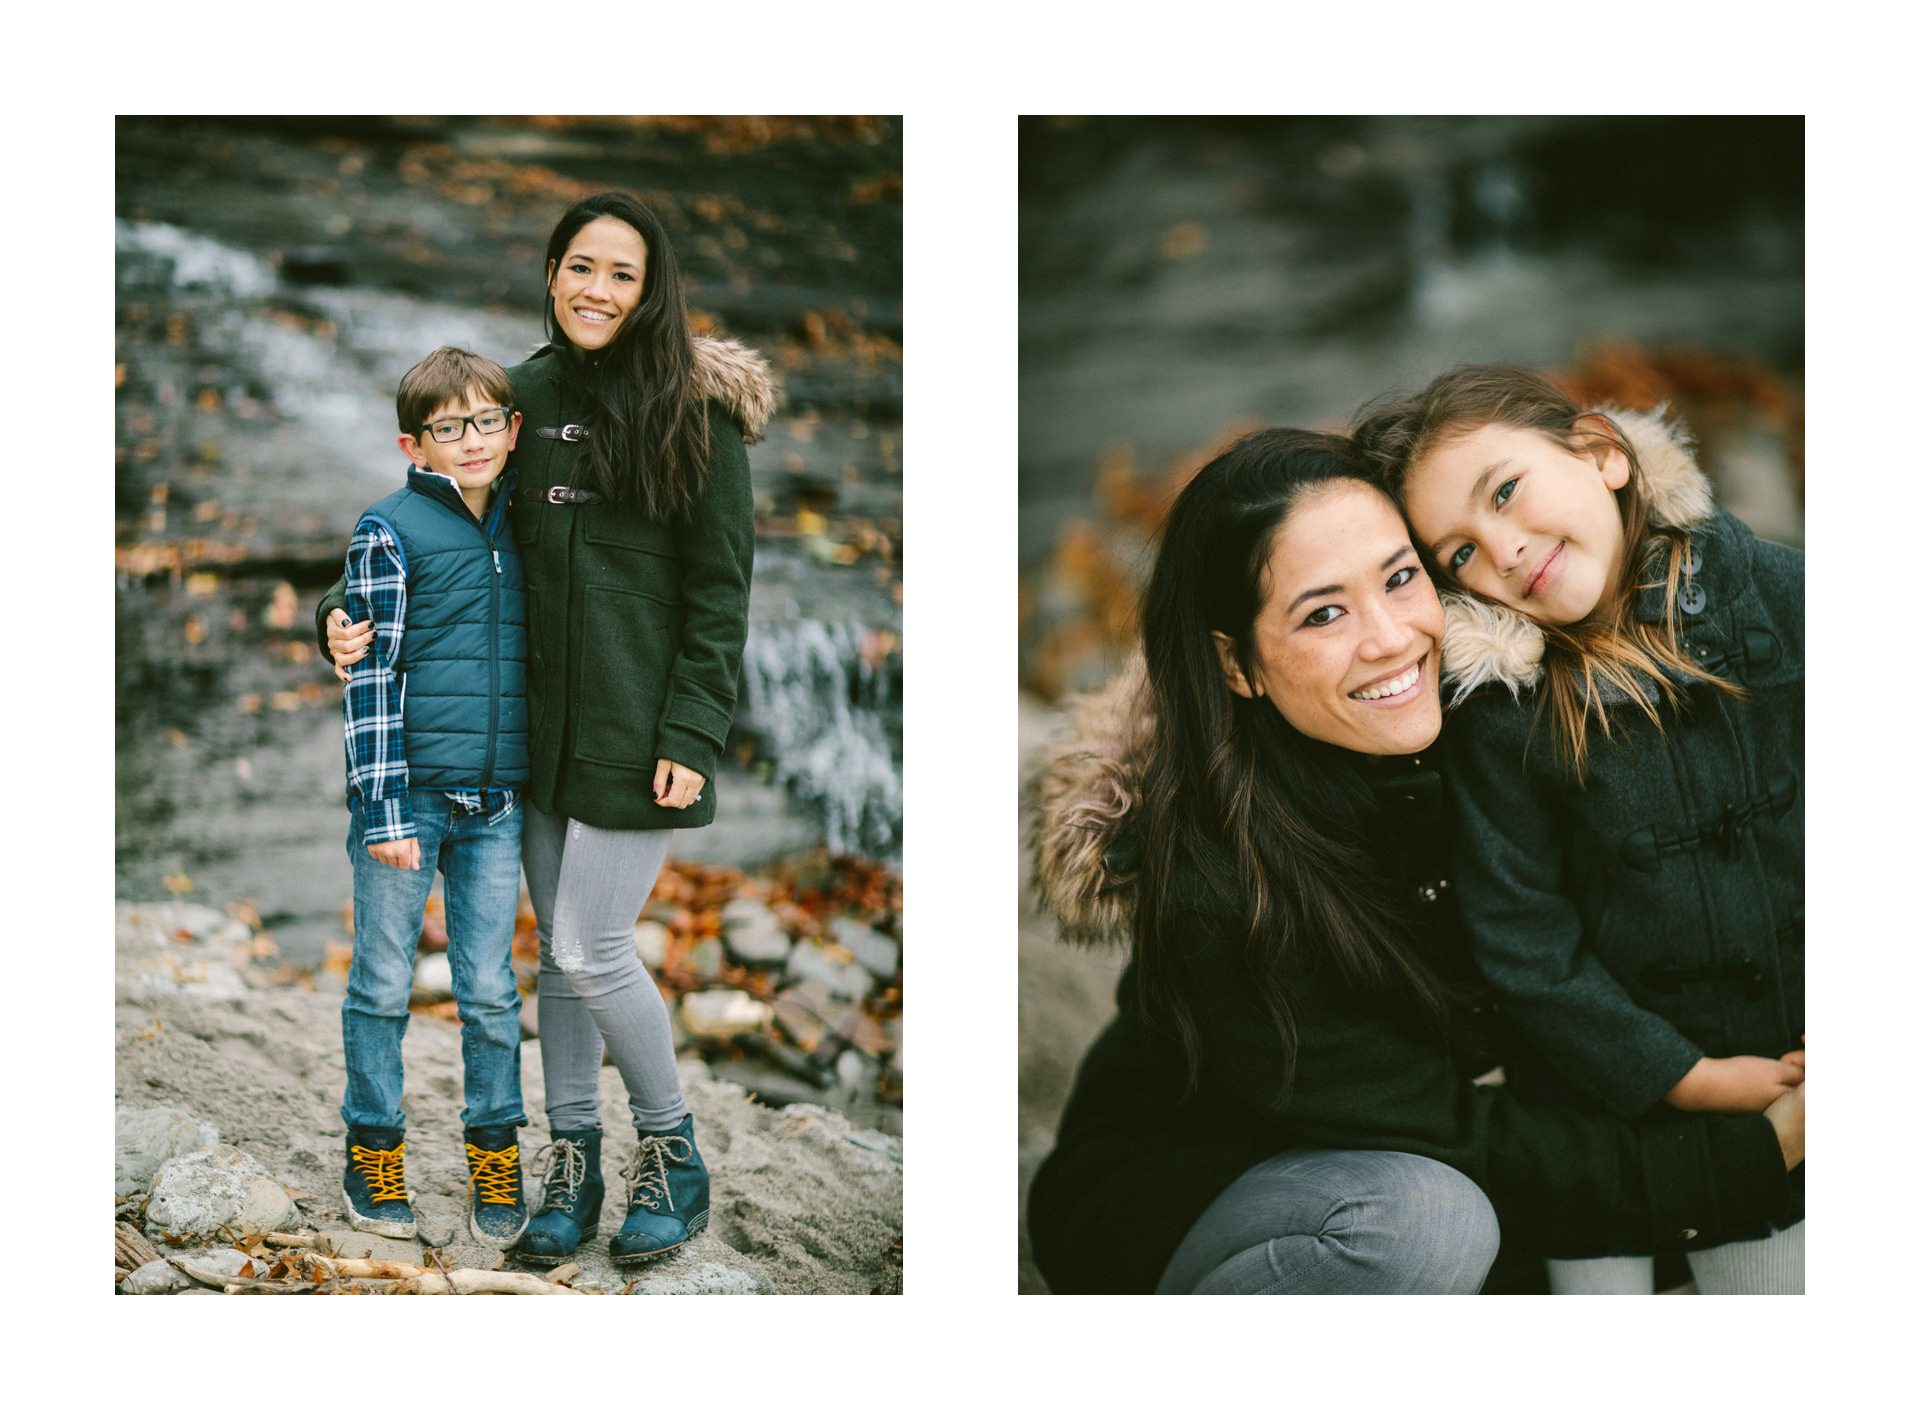 Westlake Ohio Family Portrait Photographer The Roths 69.jpg